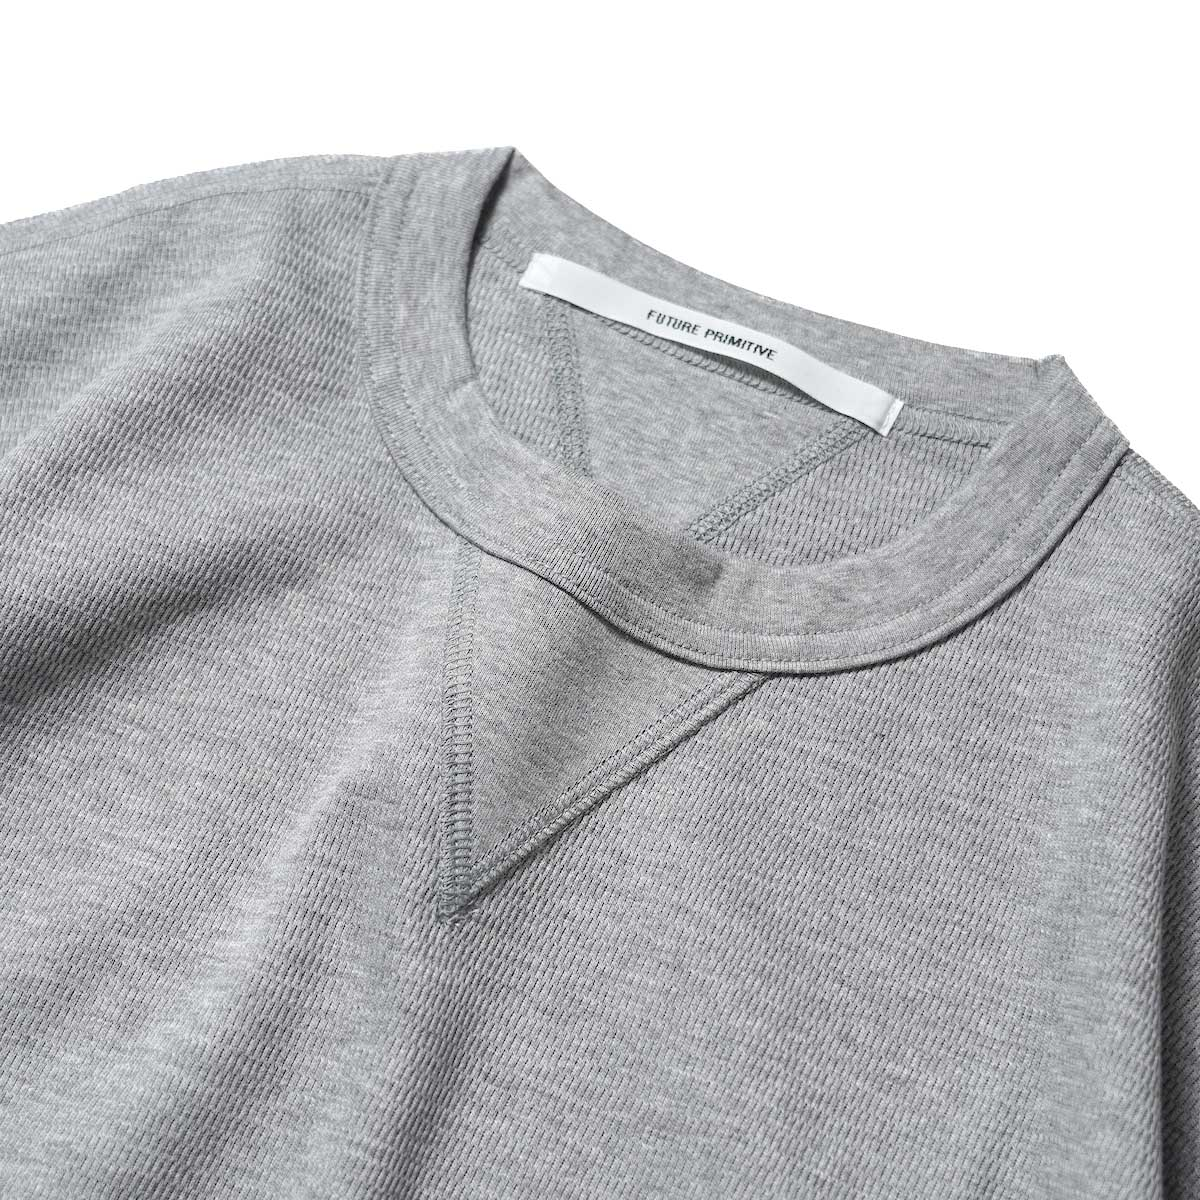 FUTURE PRIMITIVE / FP THERMAL V T-SHIRT (Gray)ガセット